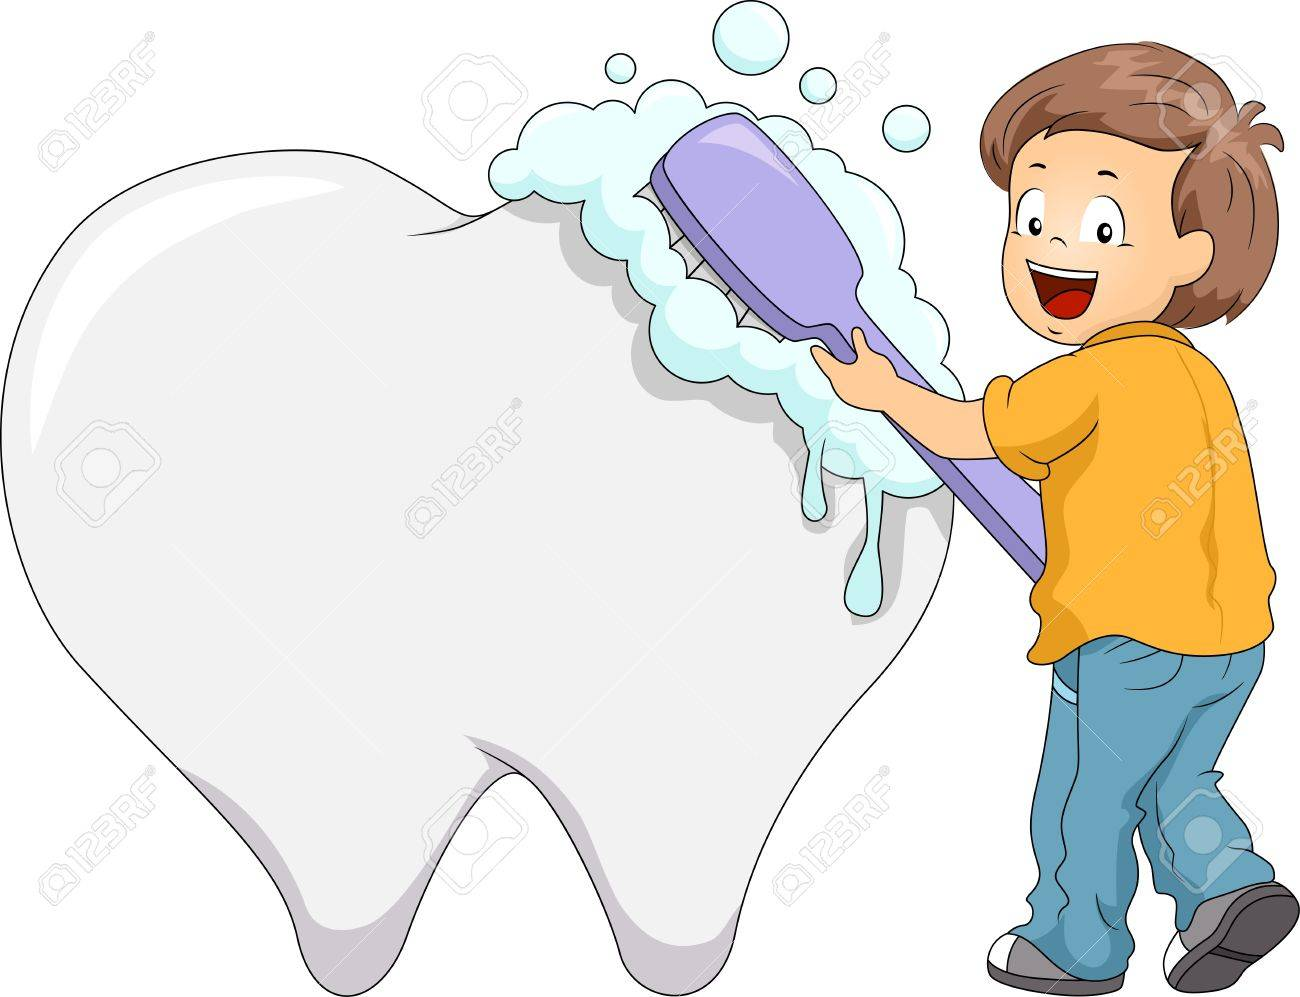 Illustration of a Boy Using a Large Toothbrush to Clean a Giant Tooth Stock Illustration - 17291081